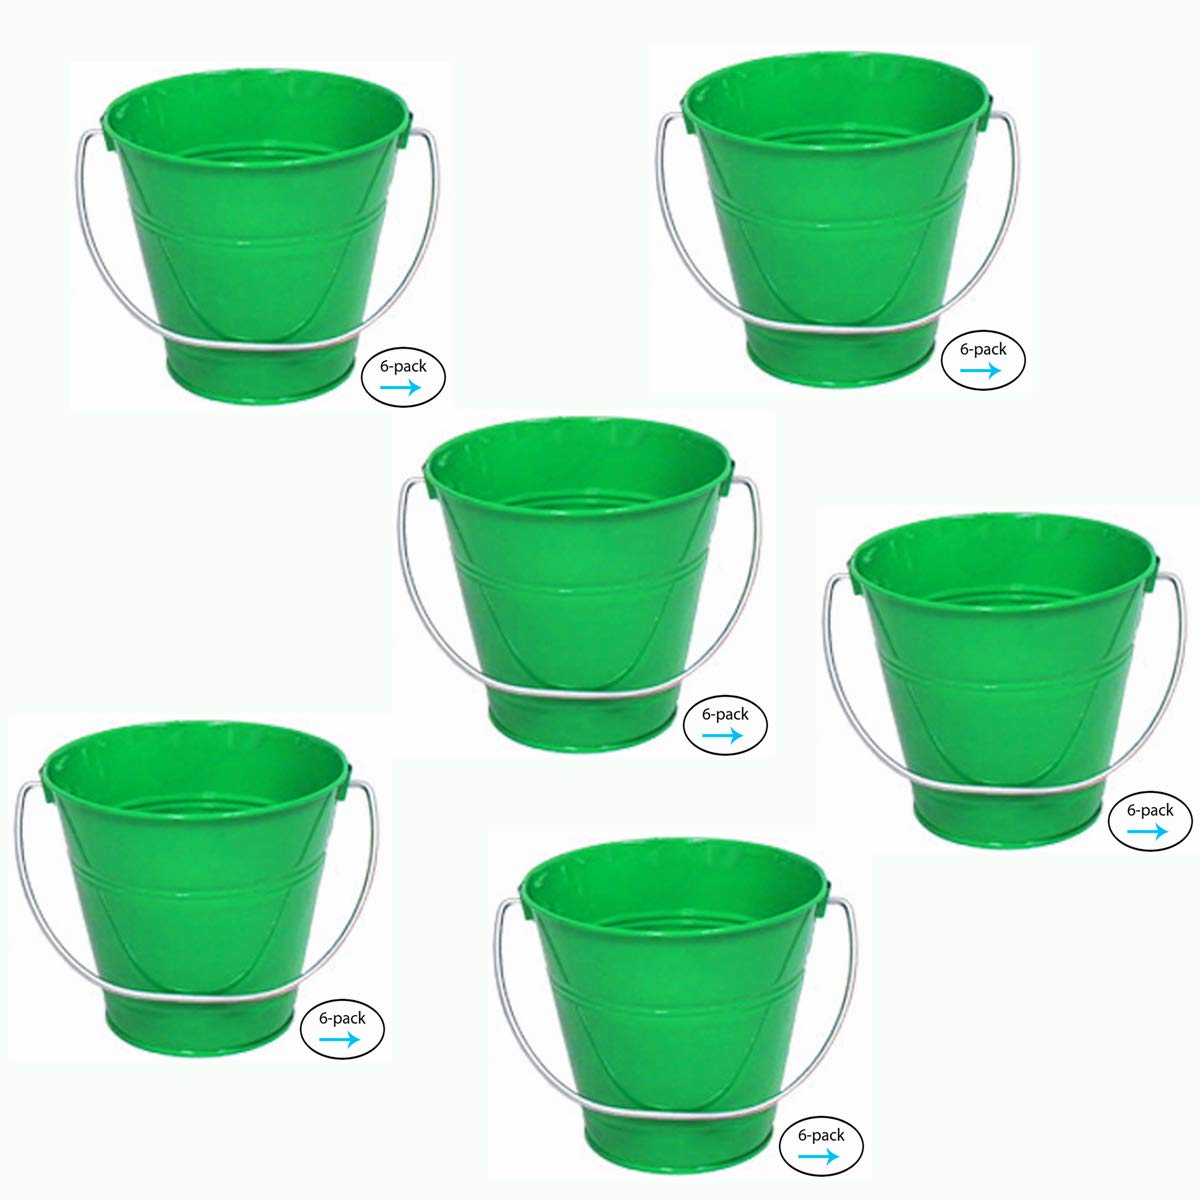 ITALIA 6-Pack Metal Bucket Color Green Size 5.6 X 6